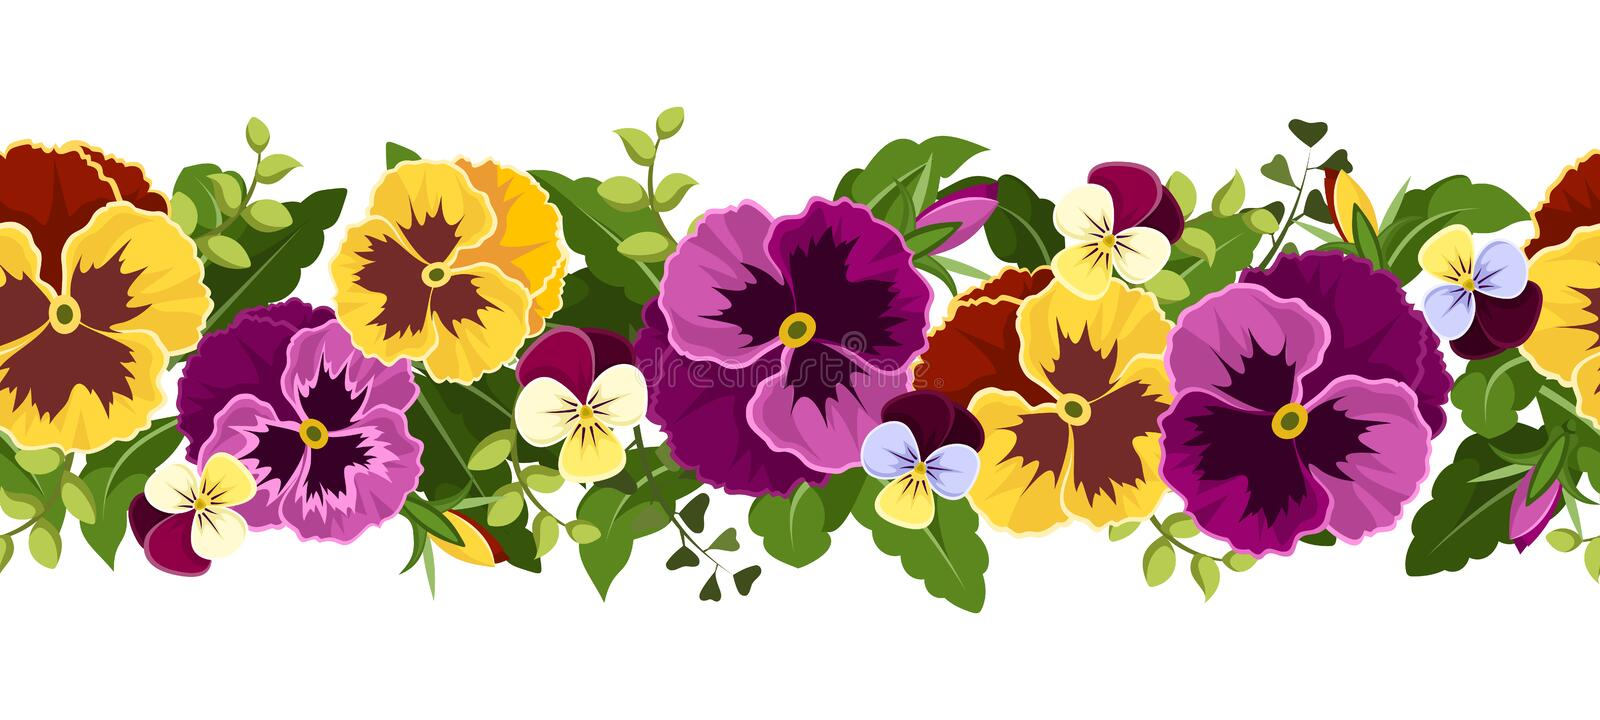 Horizontal seamless background with pansy flowers. stock illustration